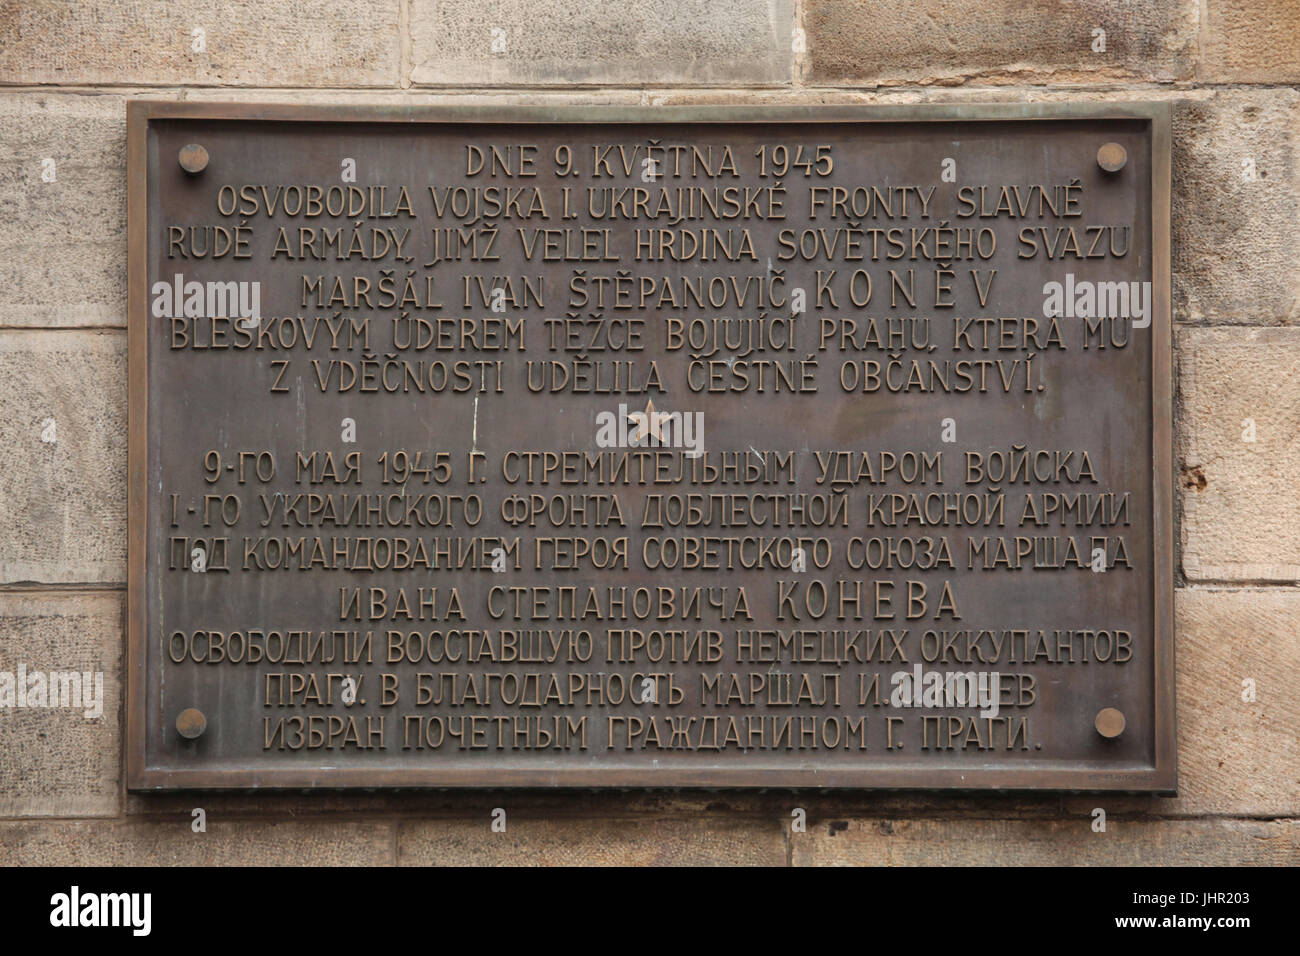 Commemorative plaque devoted to the liberation of Prague by the Red Army on 9 May 1945 installed on the Old Town - Stock Image